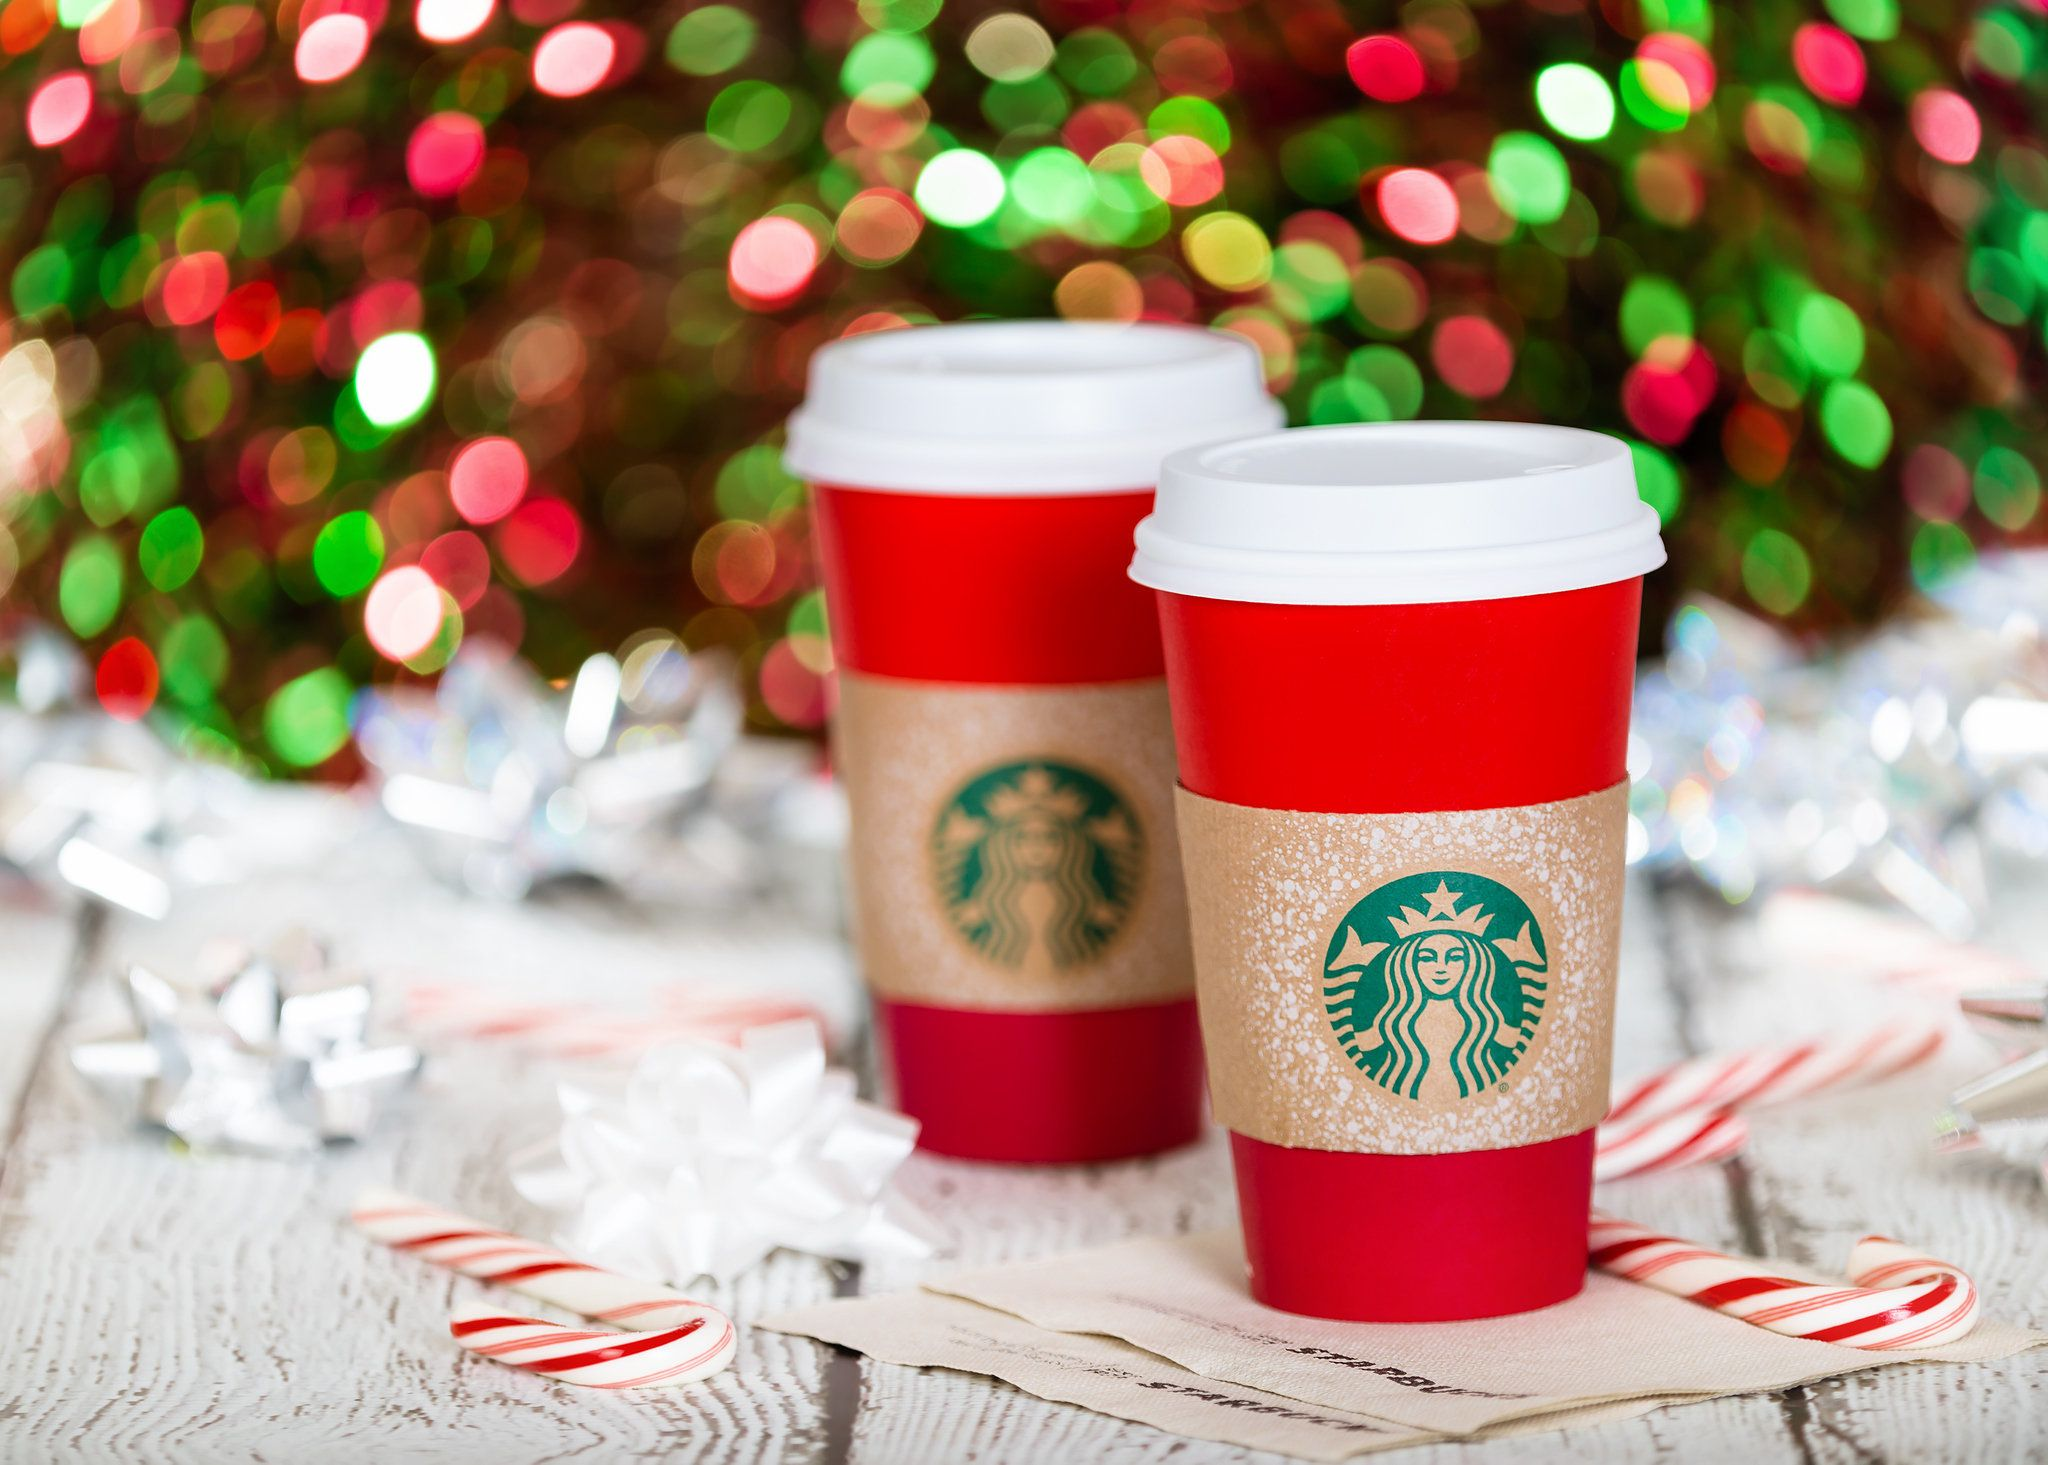 Seeing Red? Christmas Coffee Cups From Starbucks, Caffè Nero, Costa And Pret Are Not Widely